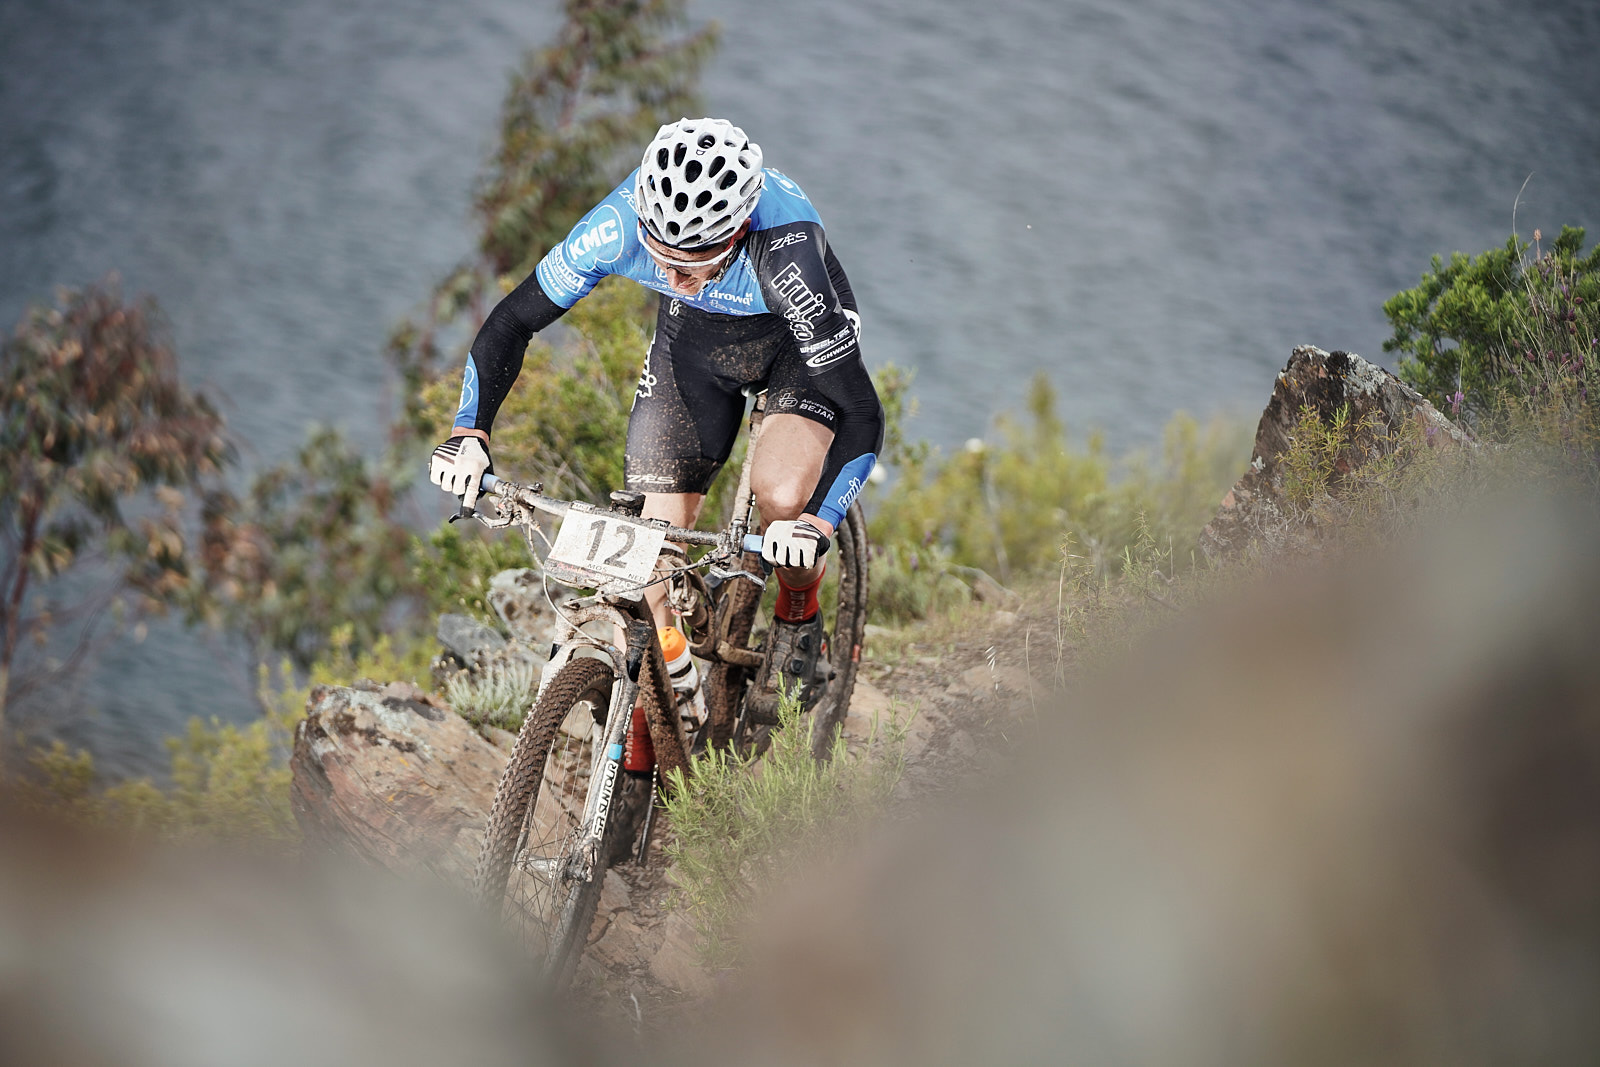 Brouwer-Trommer winnen de proloog van de '4 Islands MTB stage race'